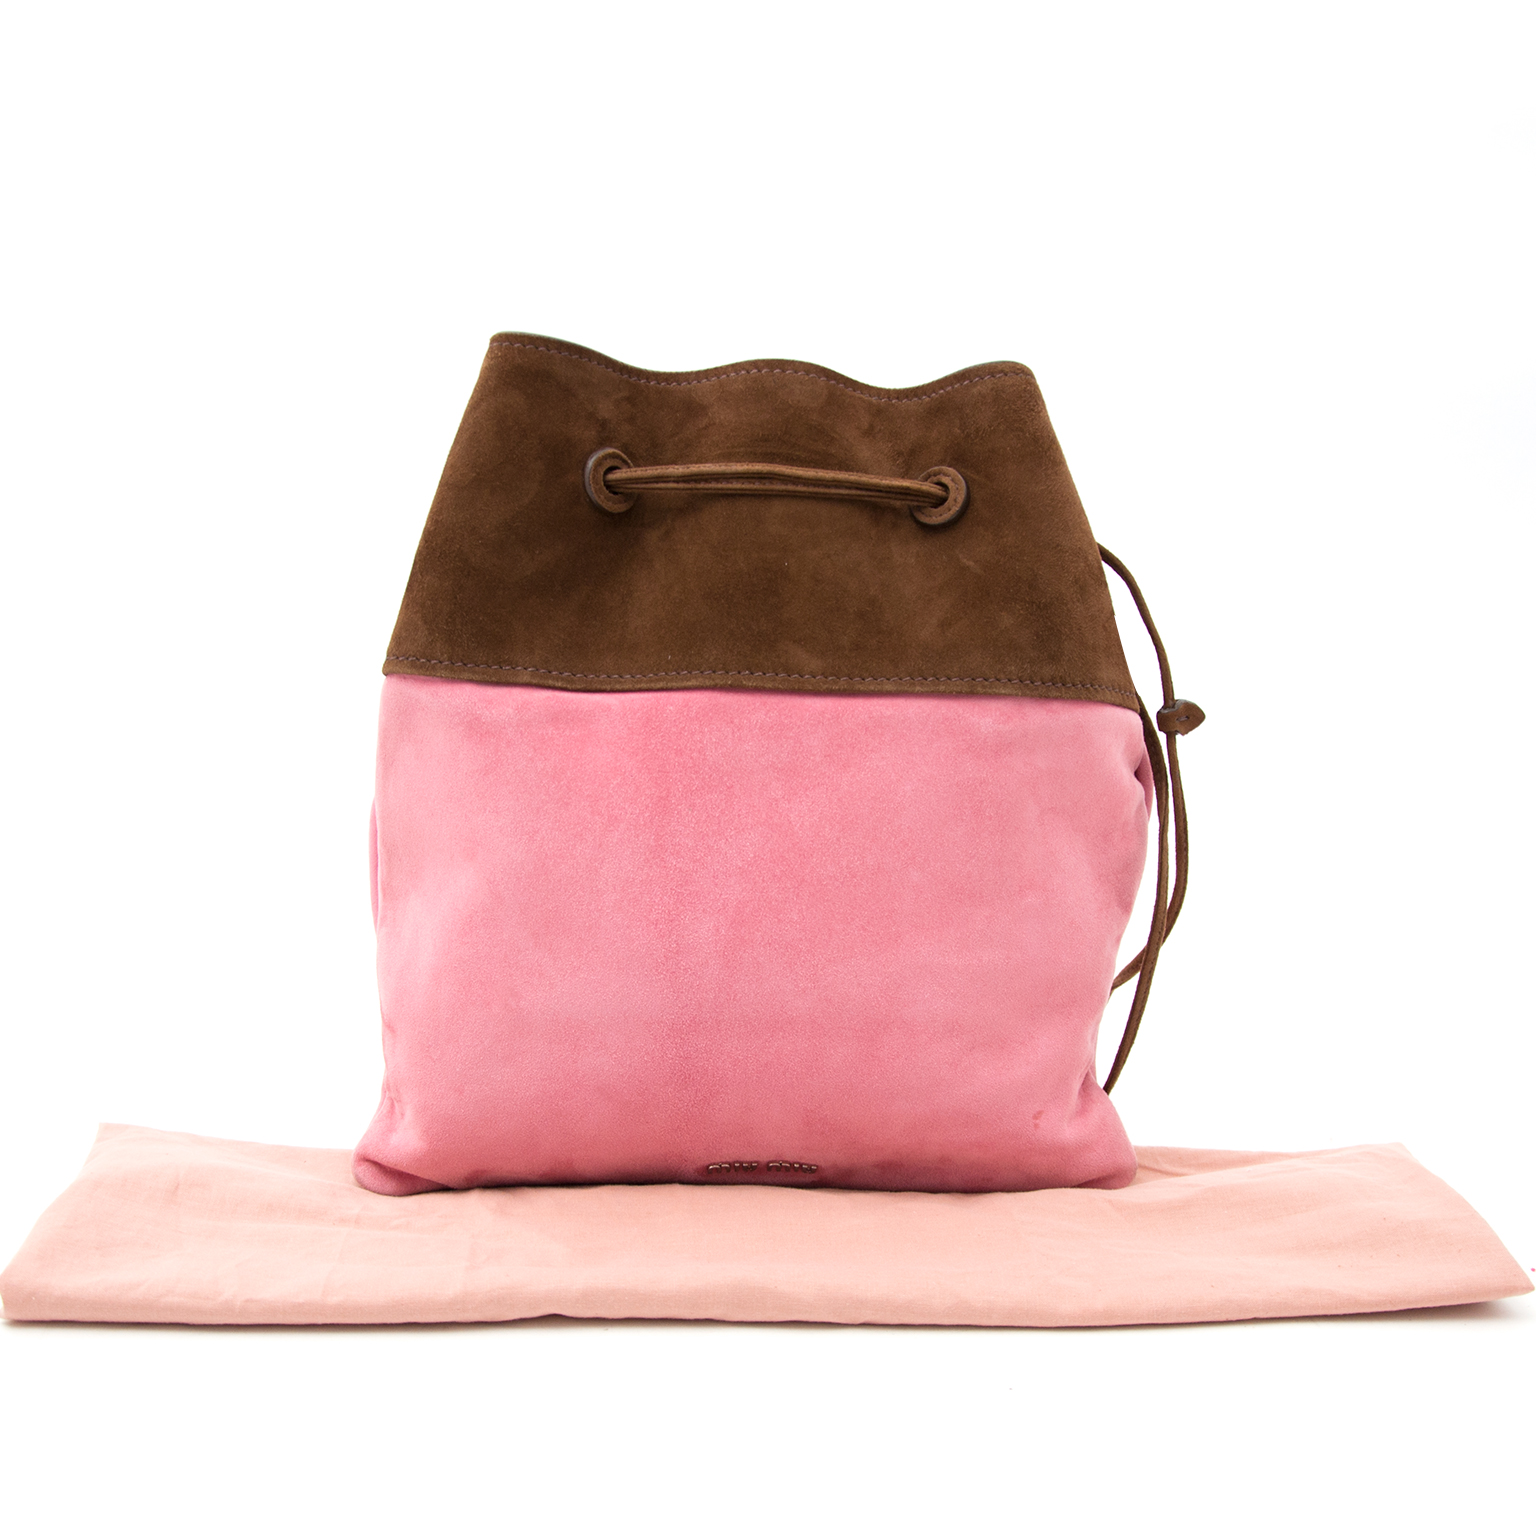 Buy a secondhand Miu Miu Pink/Brown Suede Bucket Bag at Labellov